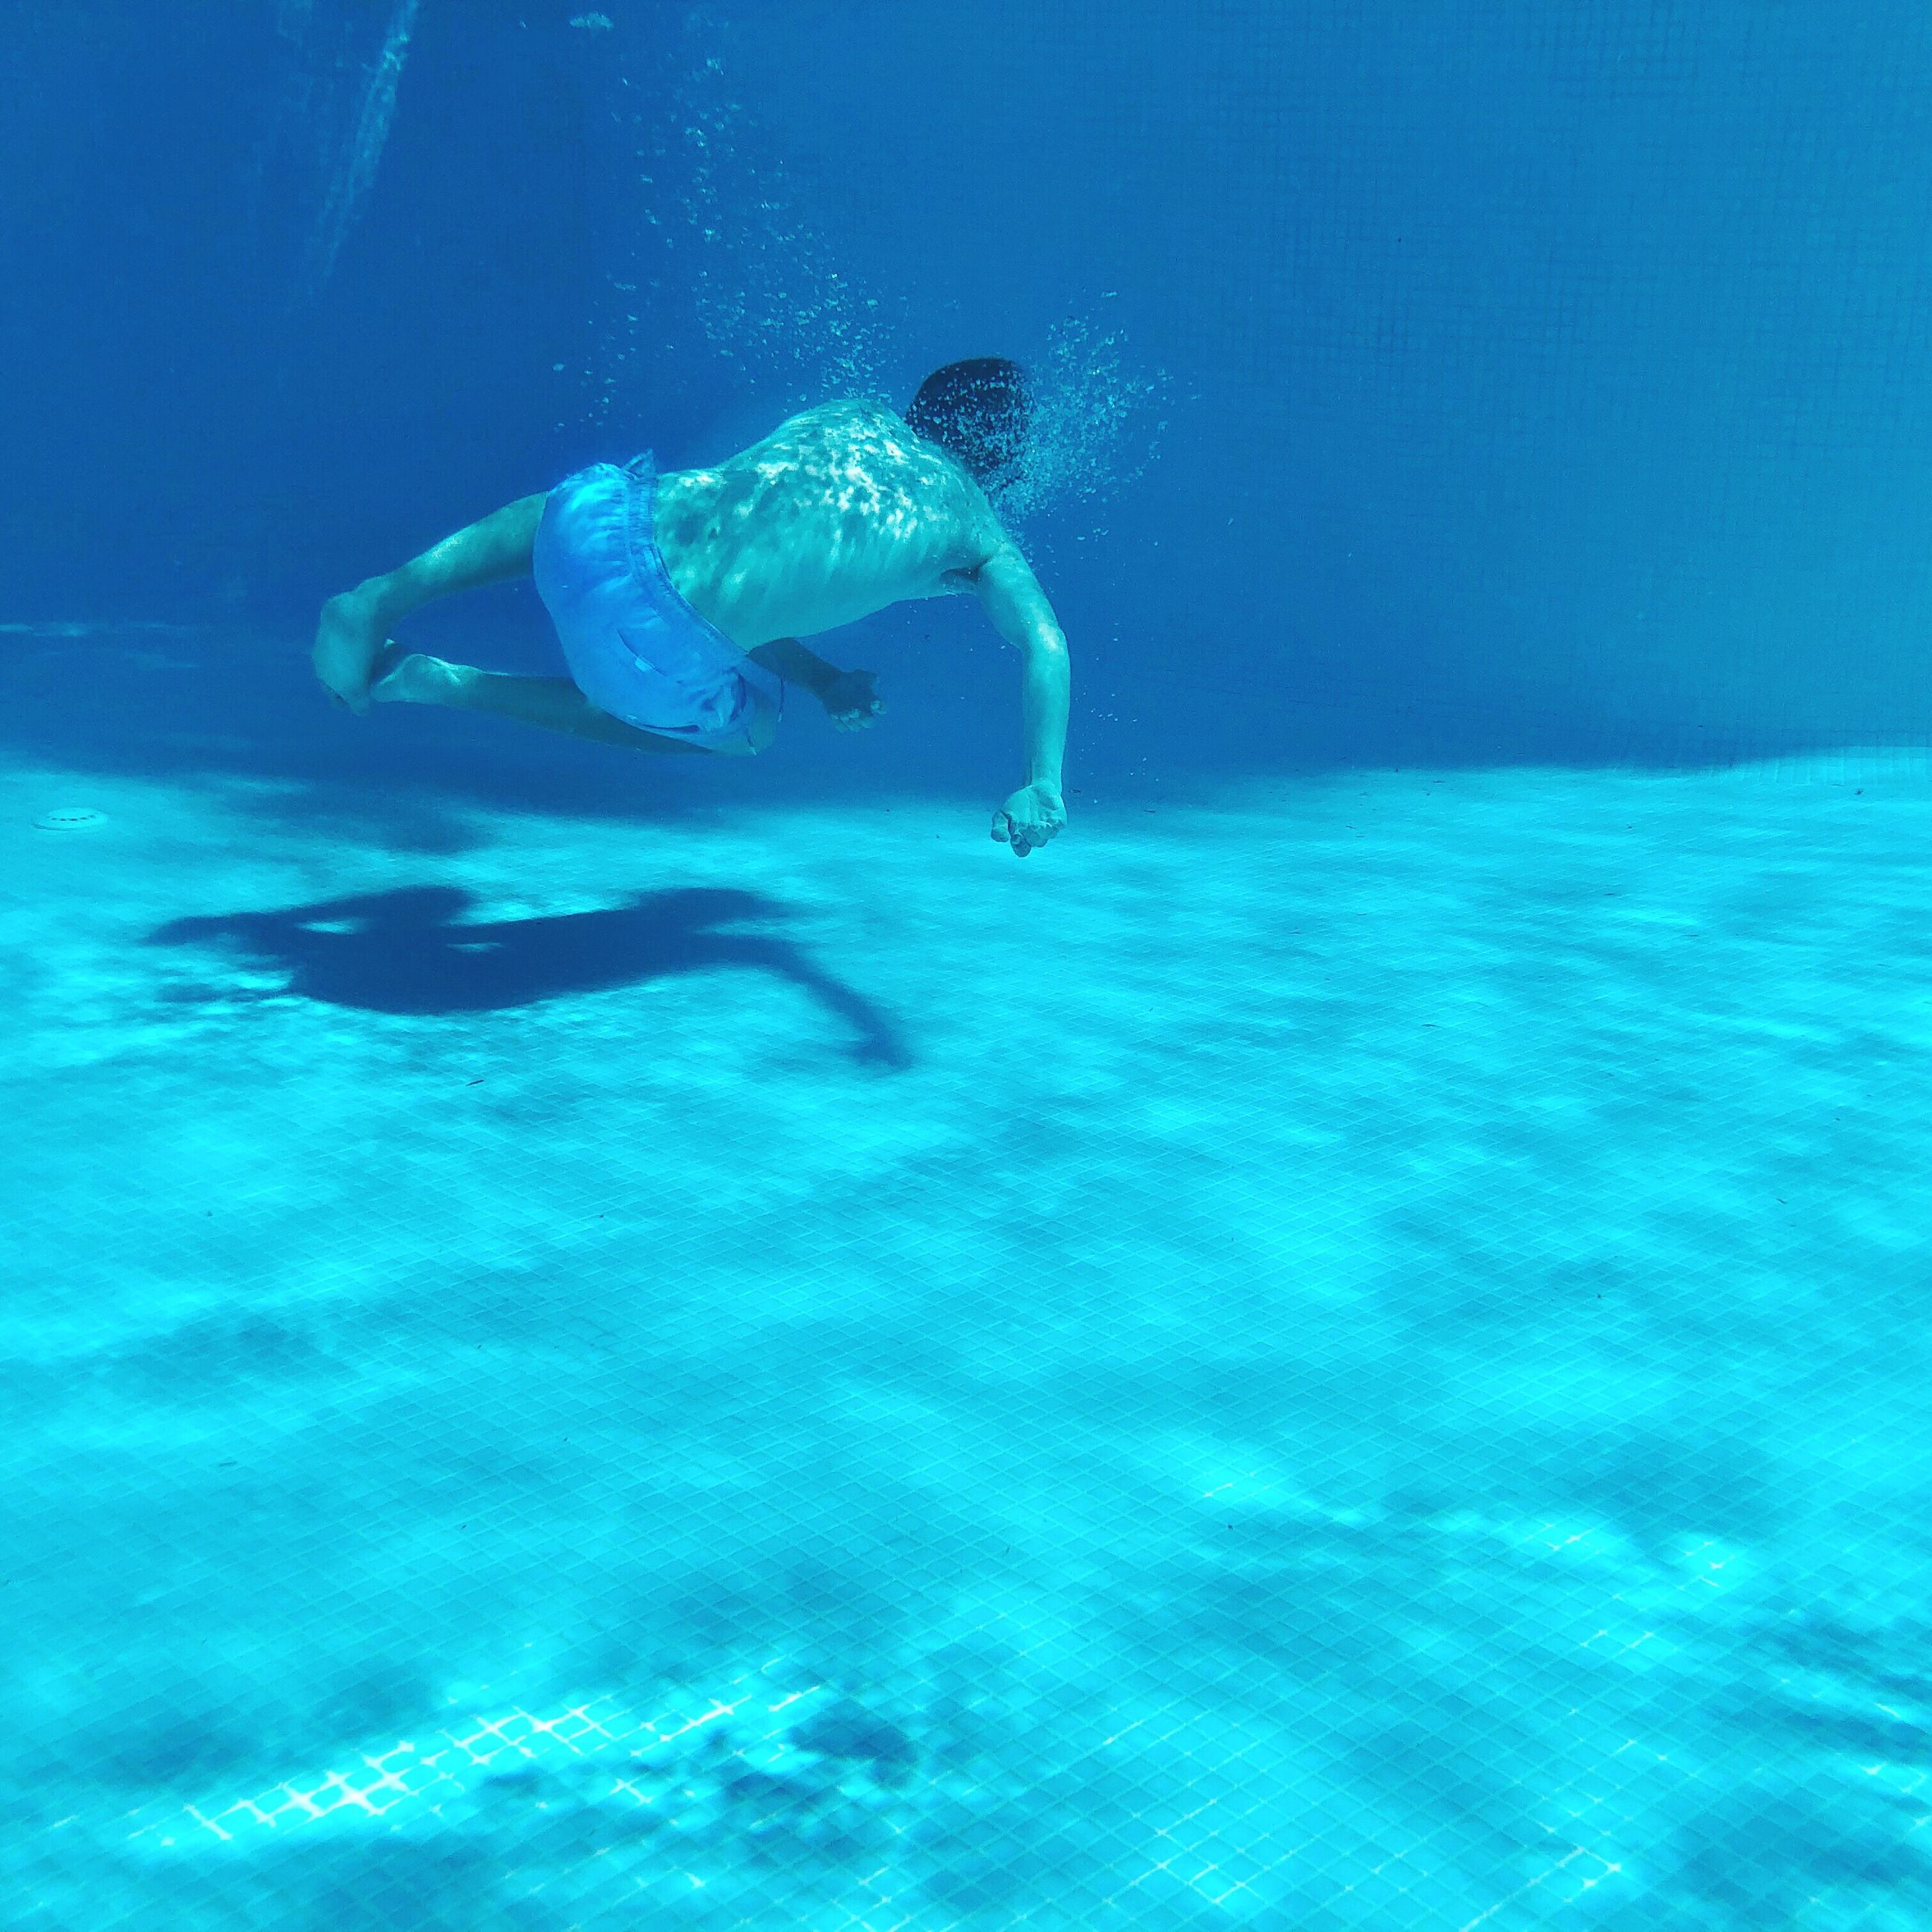 underwater, sea, water, swimming, one person, blue, sport, undersea, adventure, full length, aquatic sport, leisure activity, exploration, nature, vacations, trip, holiday, day, outdoors, snorkeling, turquoise colored